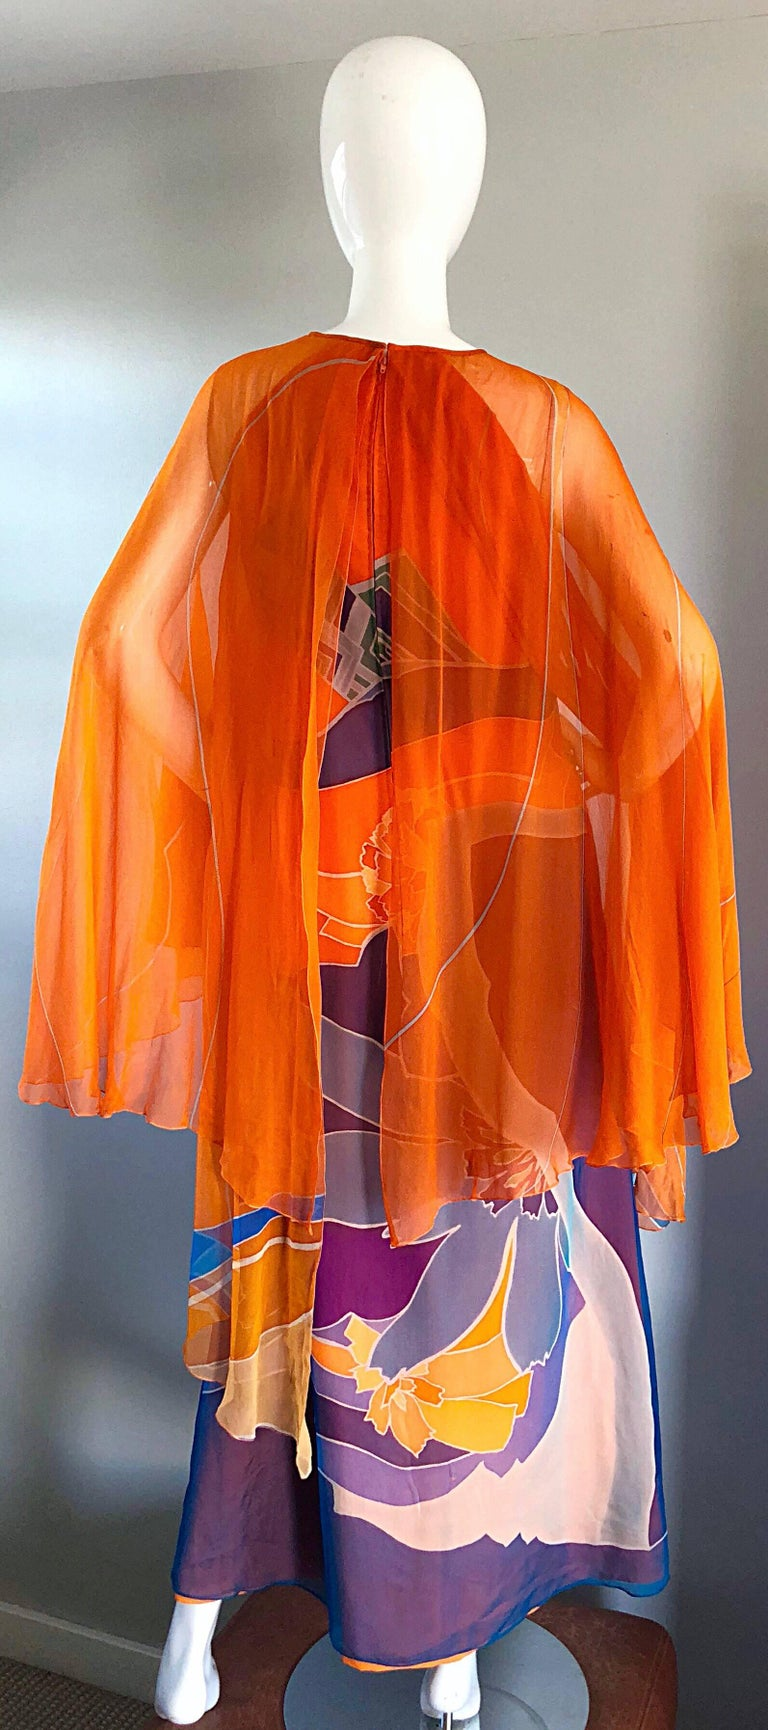 Women's 1970s Hanae Mori Couture Bright Orange Silk Chiffon Vintage Caftan Maxi Dress For Sale